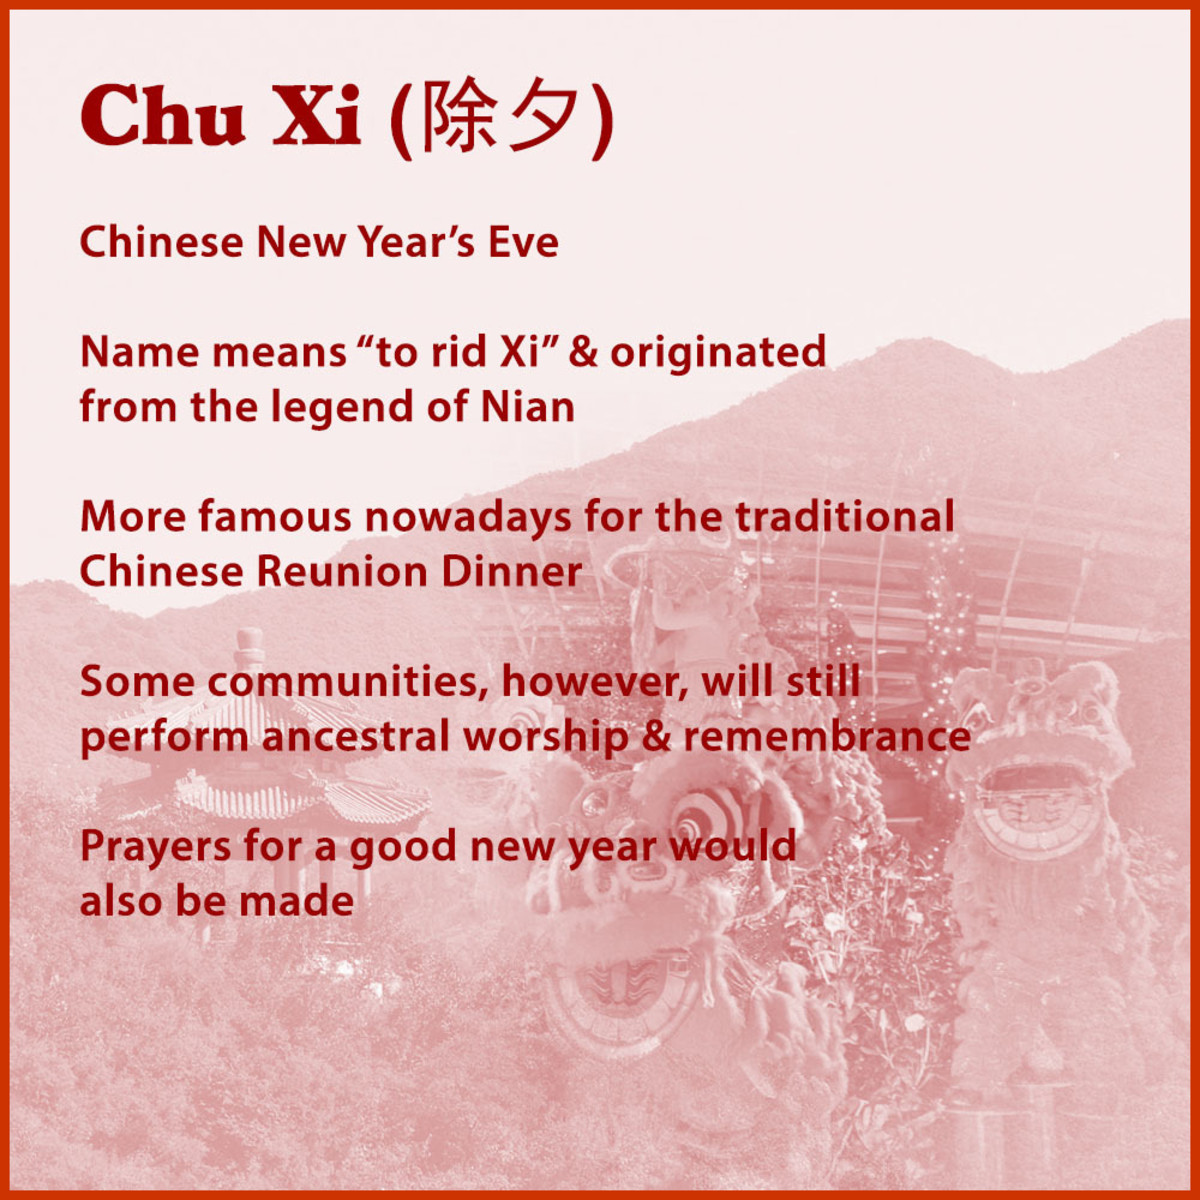 Chu Xi is the formal name for Chinese New Year's Eve.